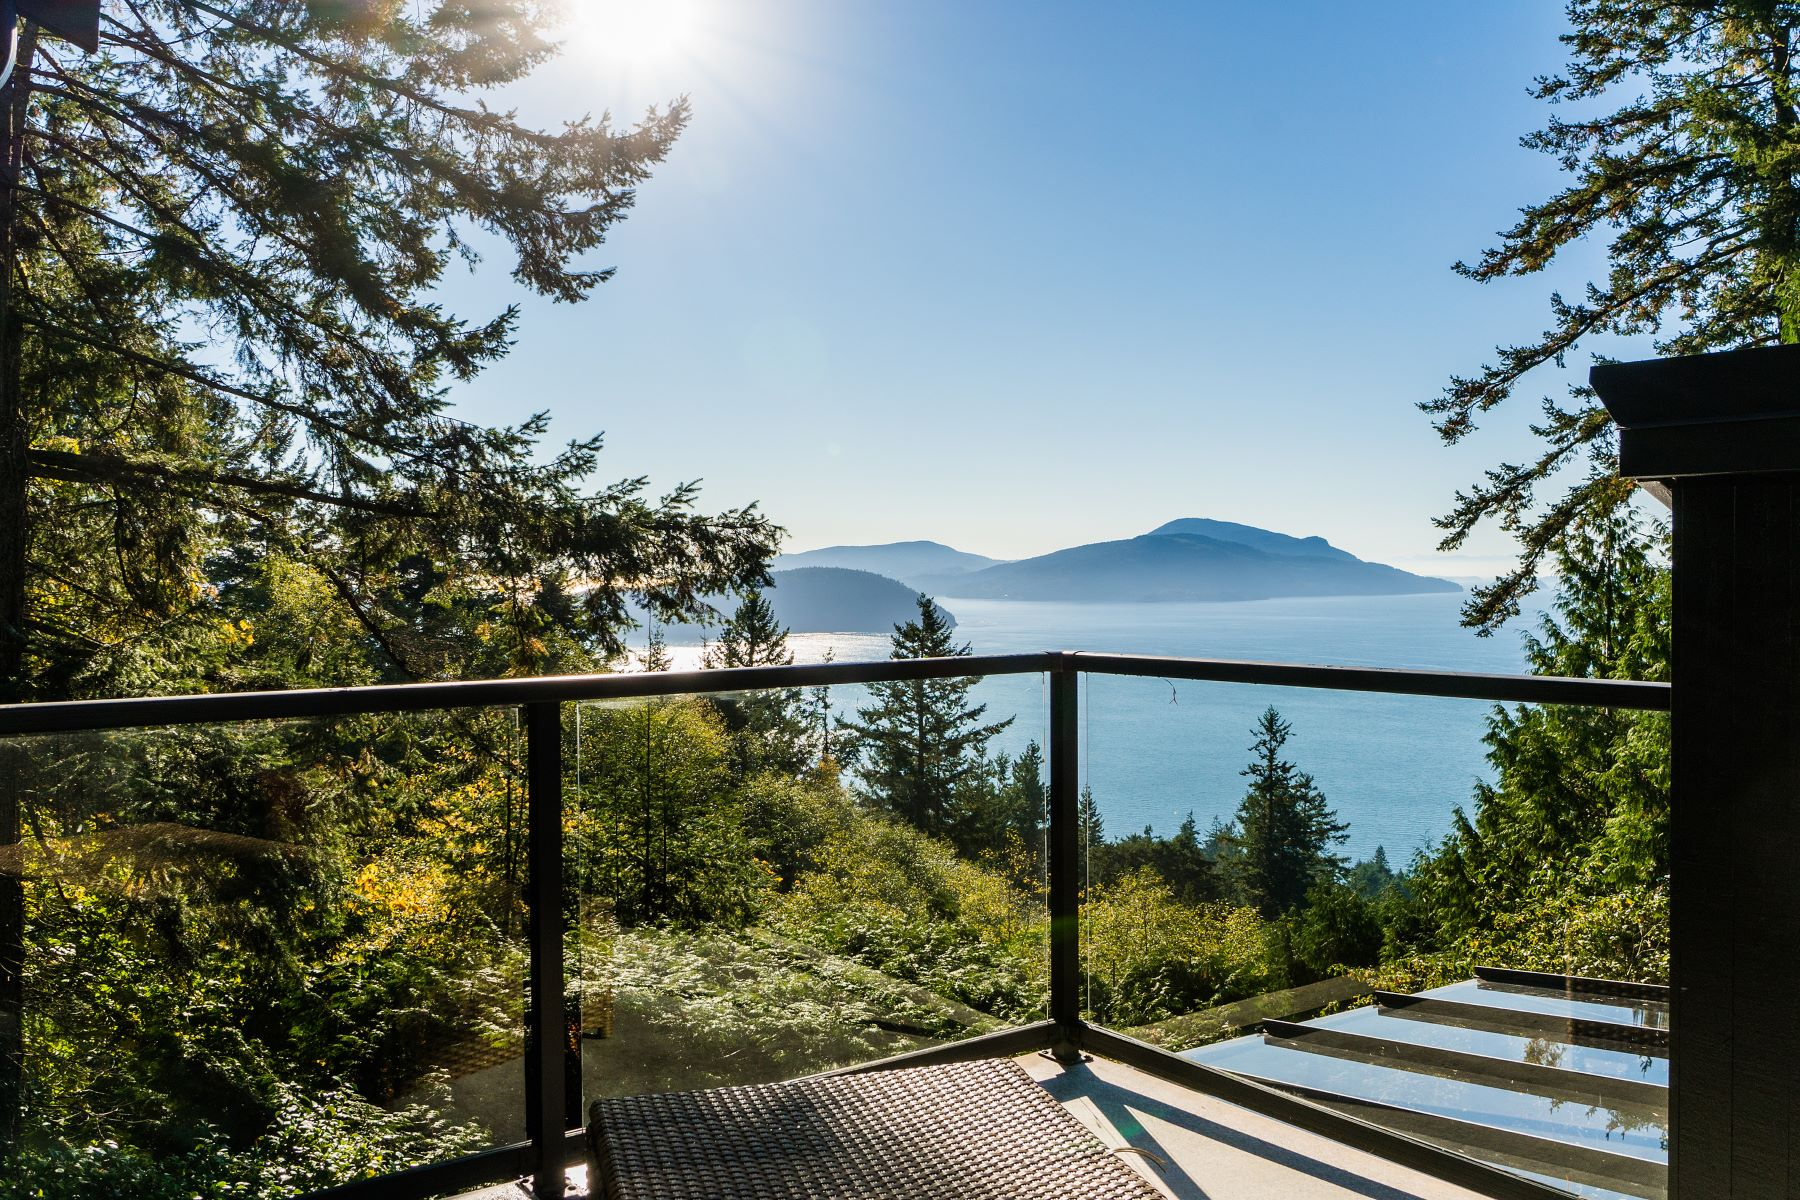 Single Family Home for Sale at West Vancouver, Greater Vancouver 450 Mountain Drive, West Vancouver, British Columbia, V0N 2E0 Canada